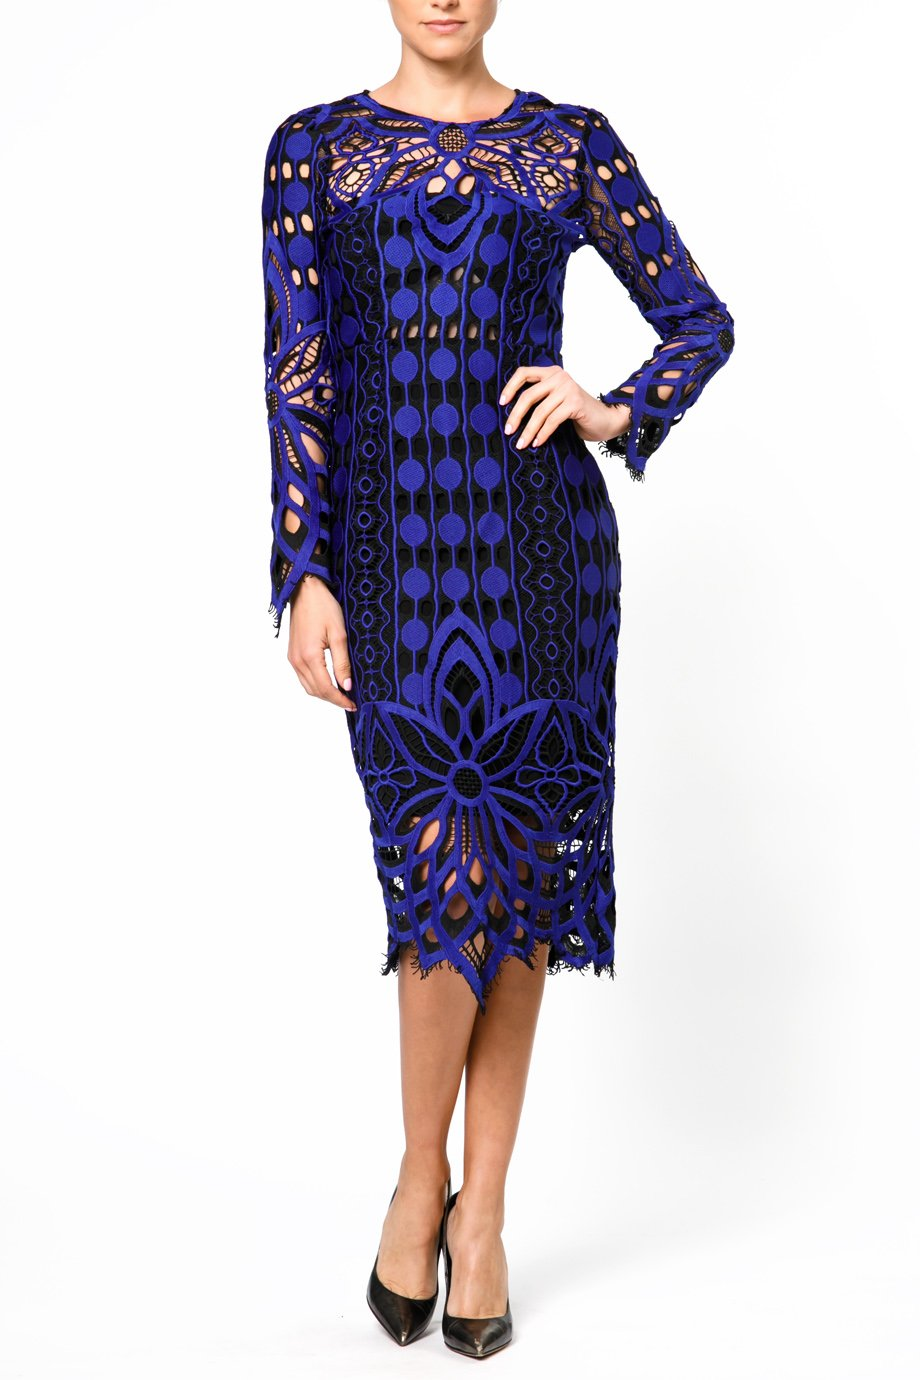 Thurley Floral Nightfall Lace Dress